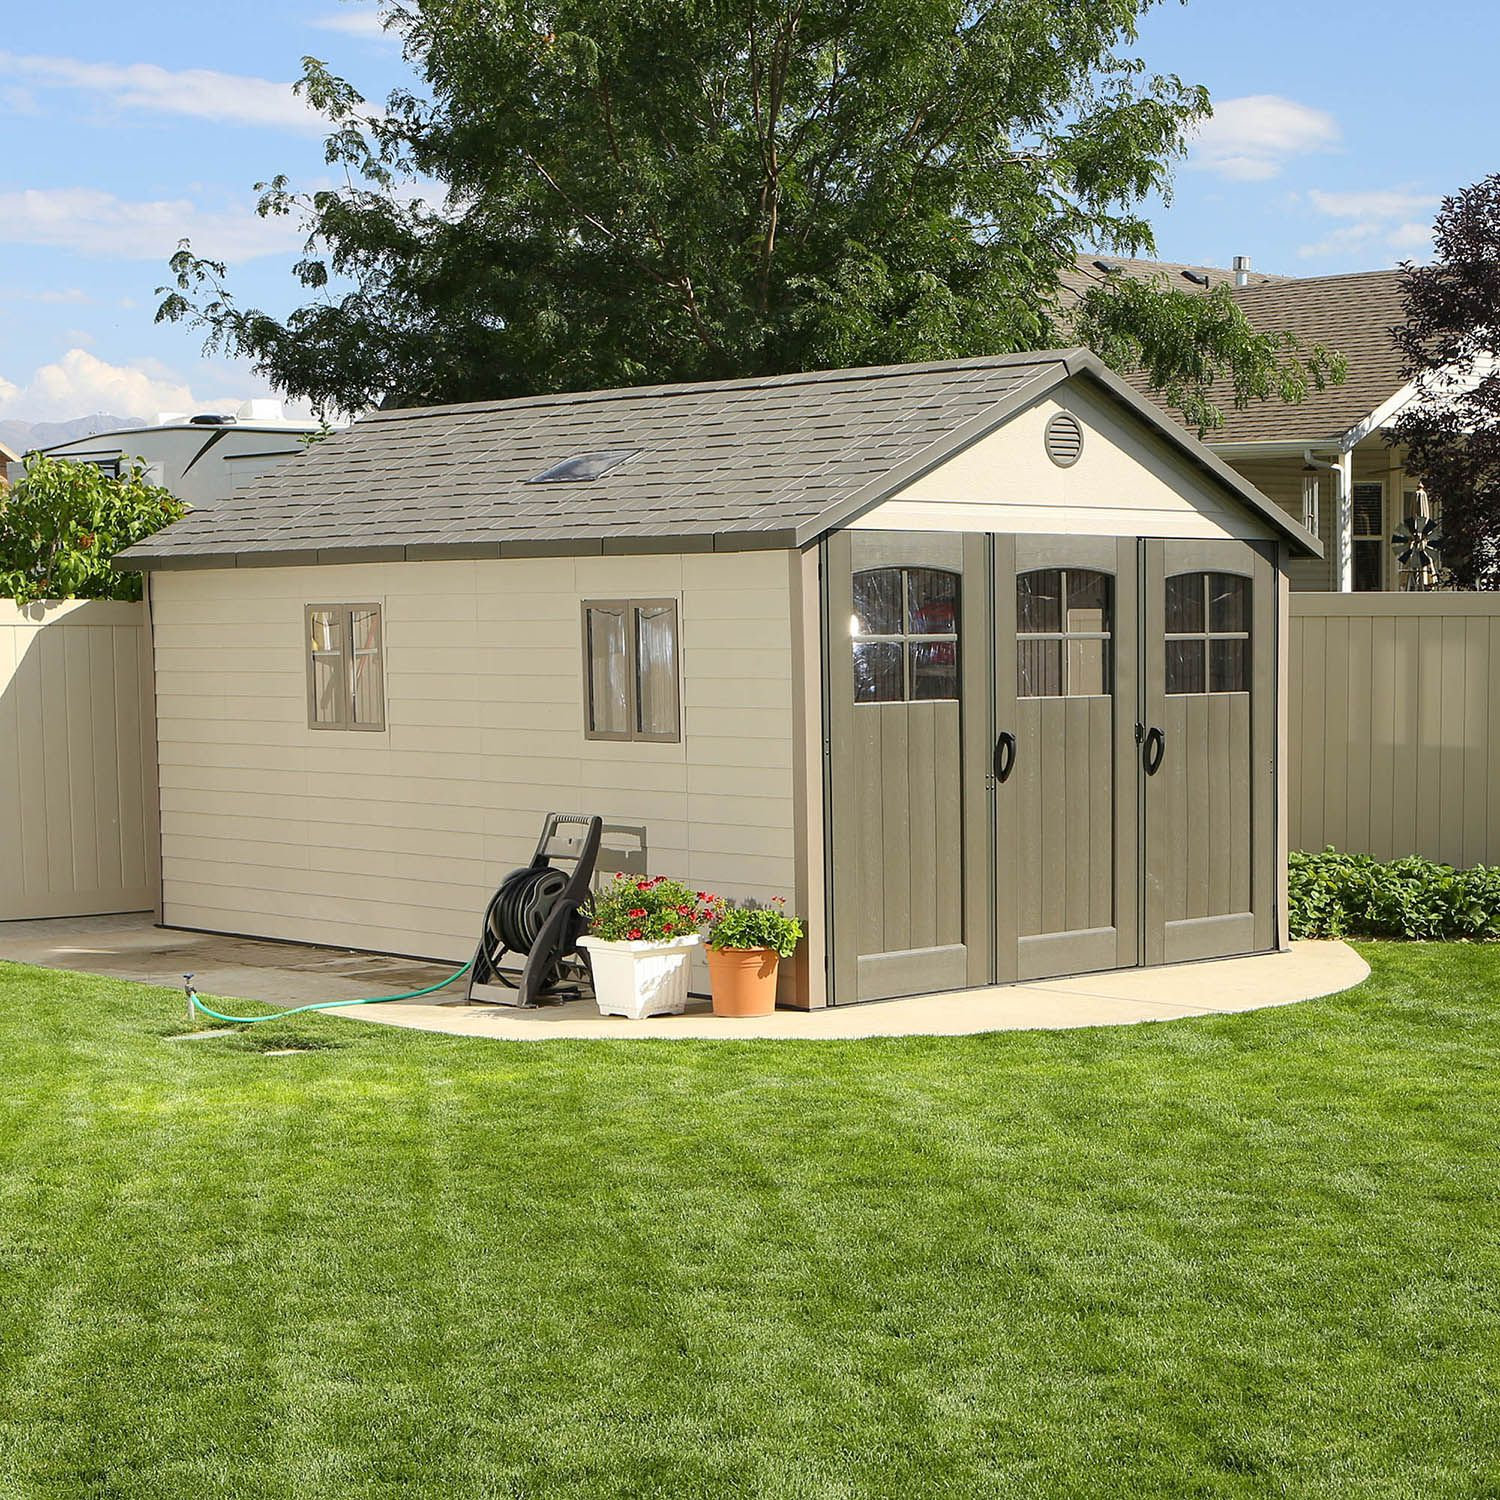 x sheds to choose outdoor shed best vila large bob slideshow your the for storage backyard rubbermaid feet